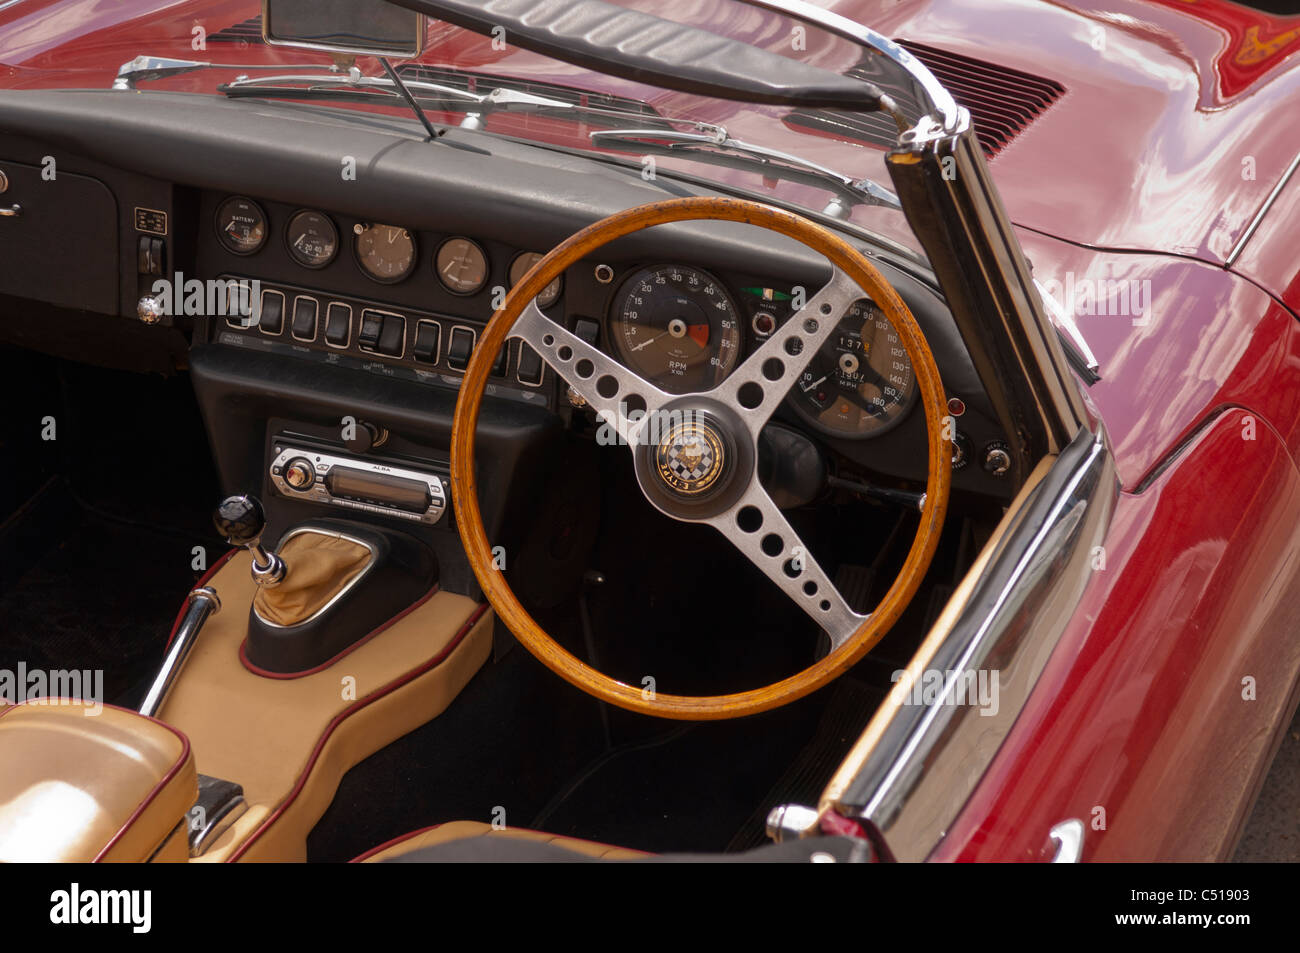 the interior of an e type jaguar 4 2 litre classic car stock photo royalty free image 37523027. Black Bedroom Furniture Sets. Home Design Ideas